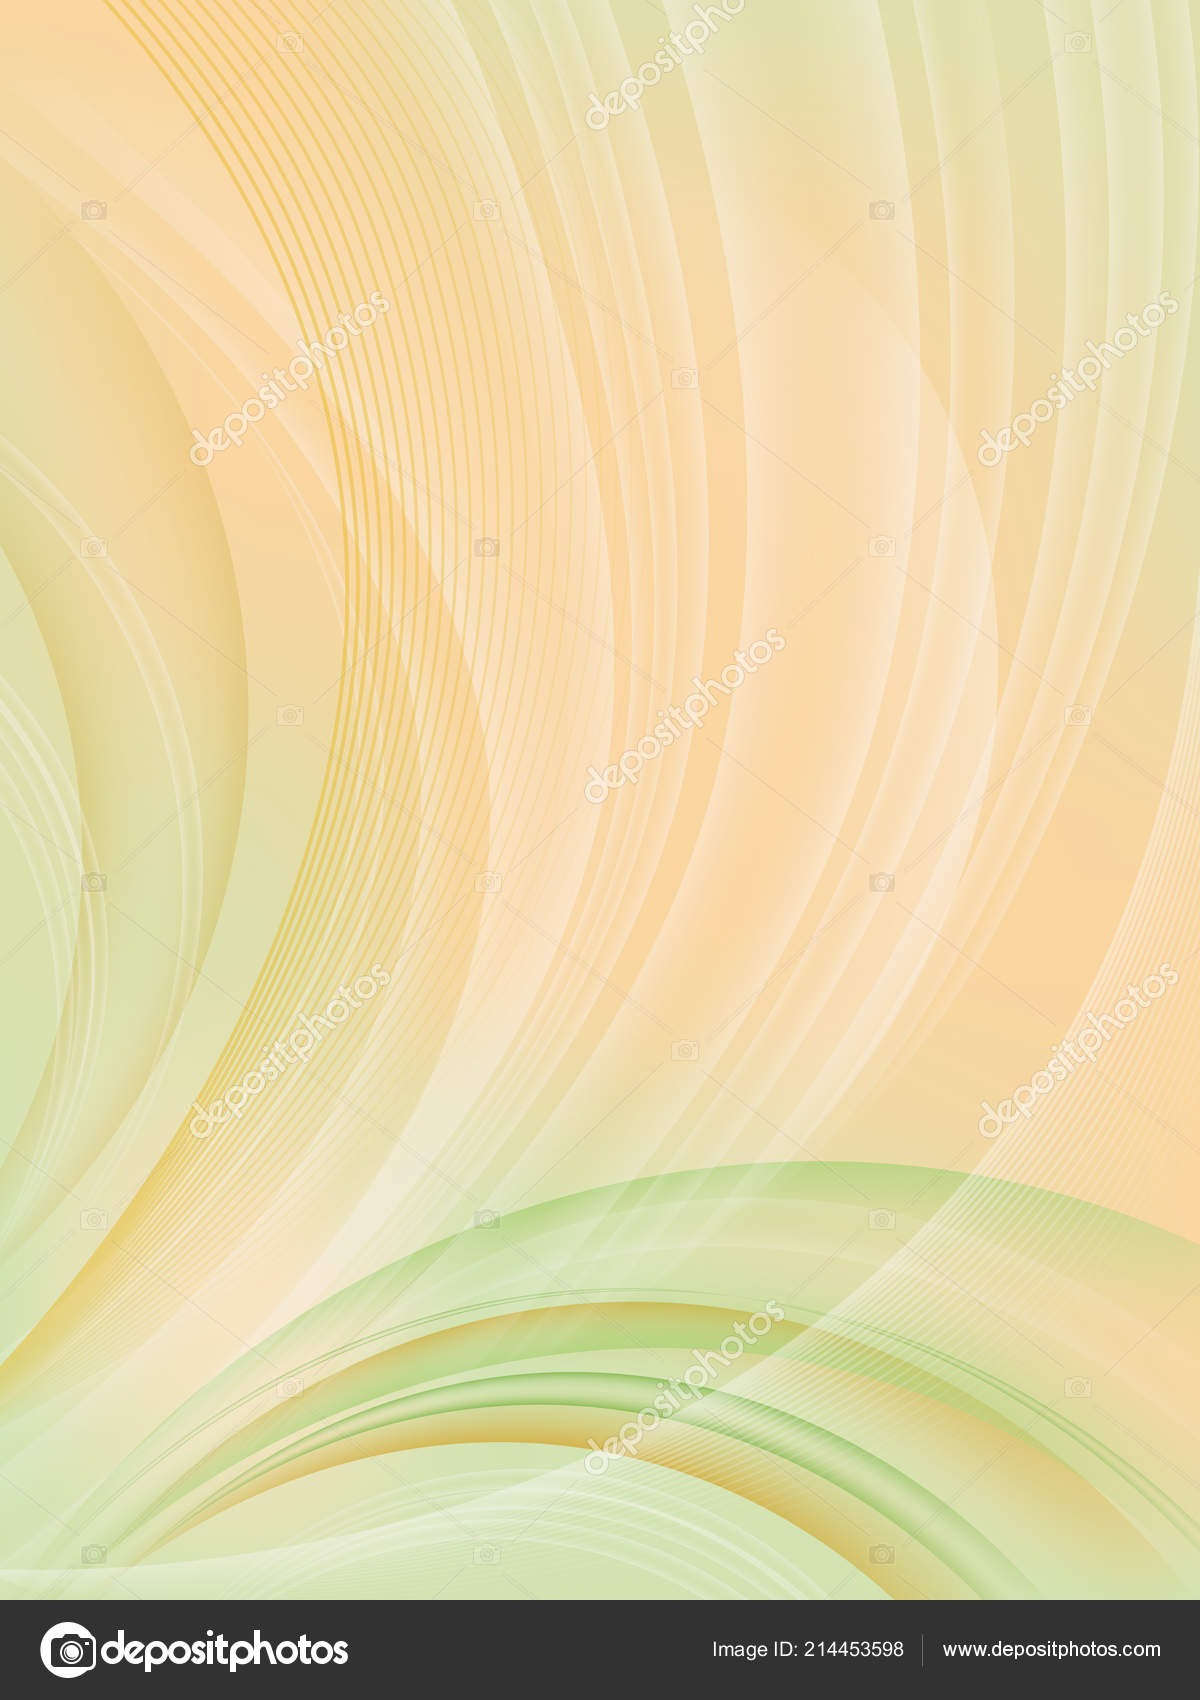 Abstract Background Transparency Effects Smooth Color Waves